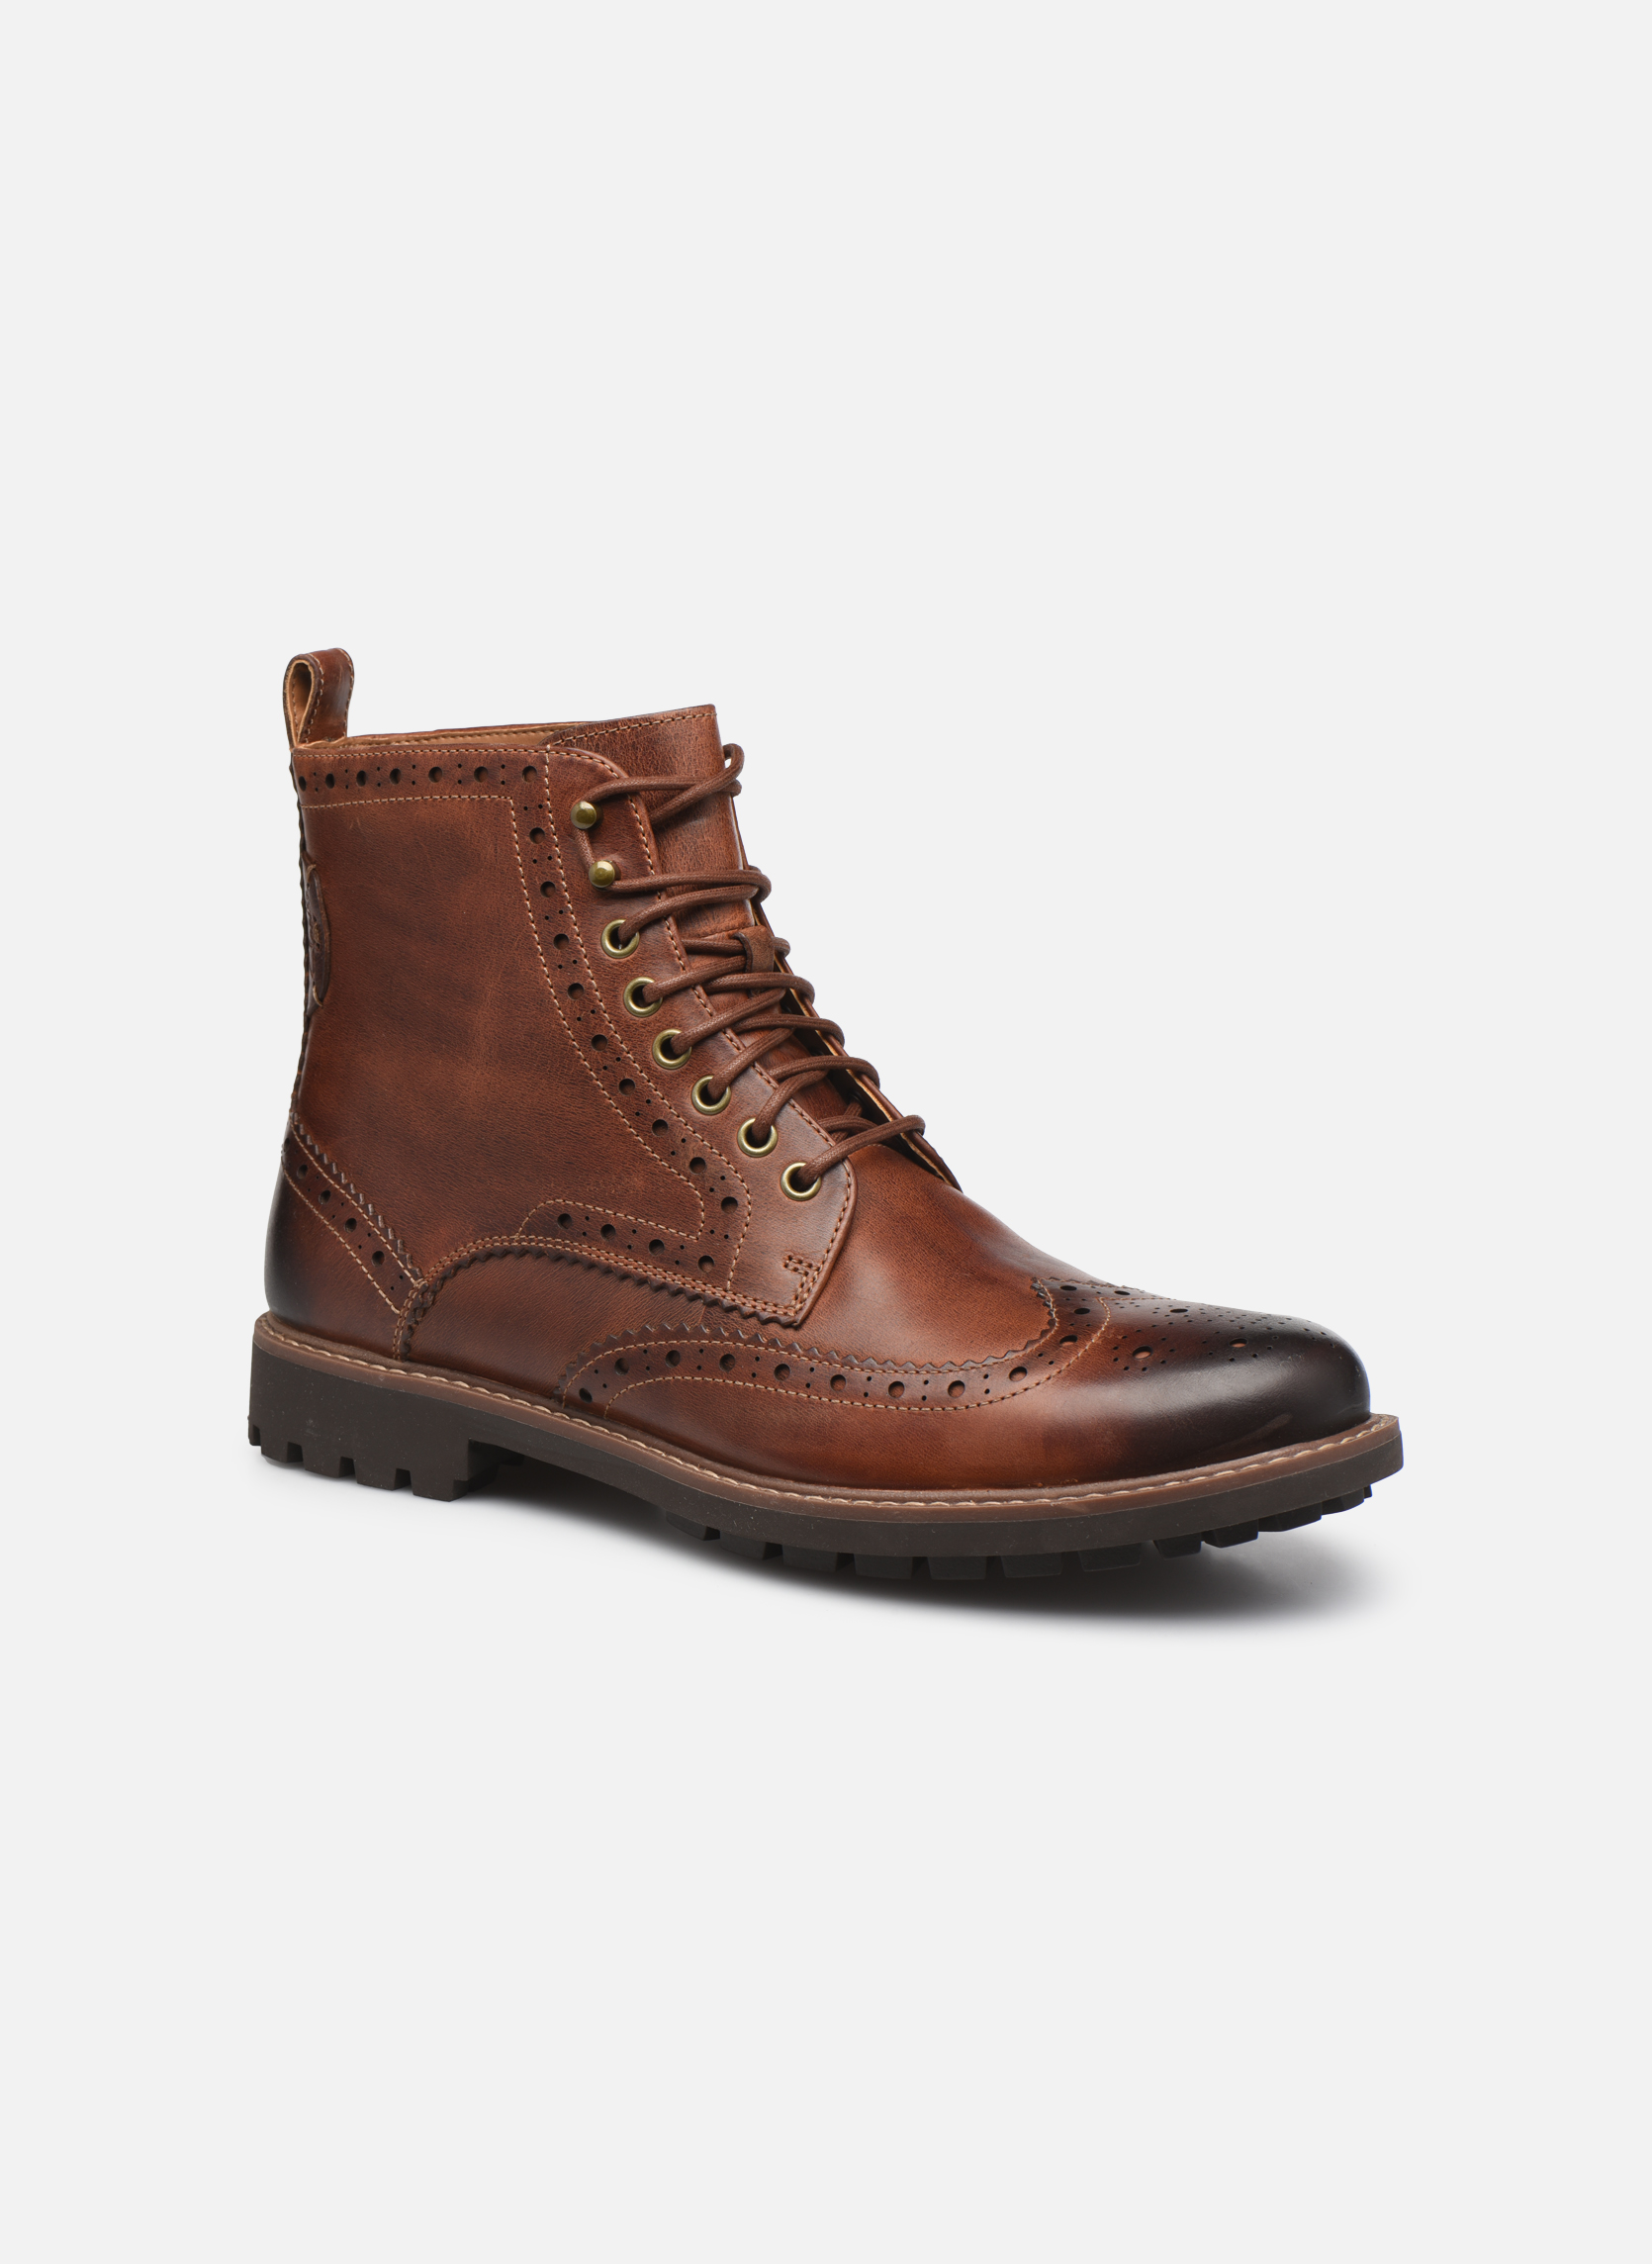 Bottines et boots Clarks Montacute Lord Marron vue détail/paire